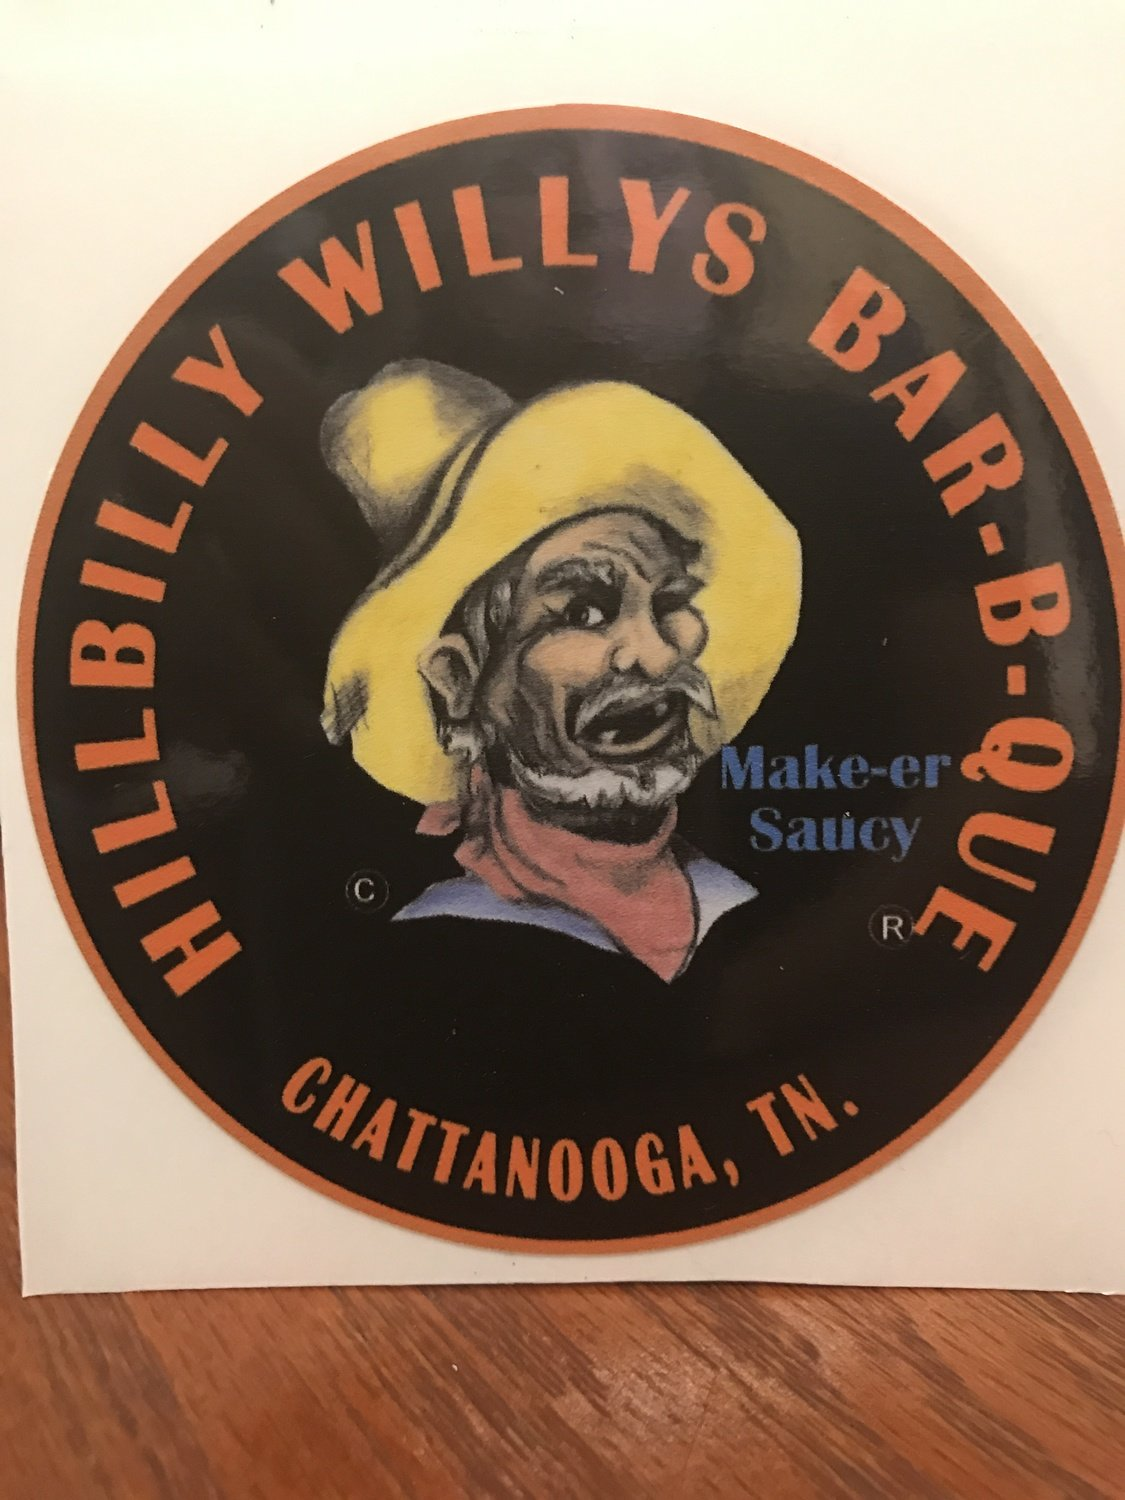 HillbillyWillys Bumper Sticker